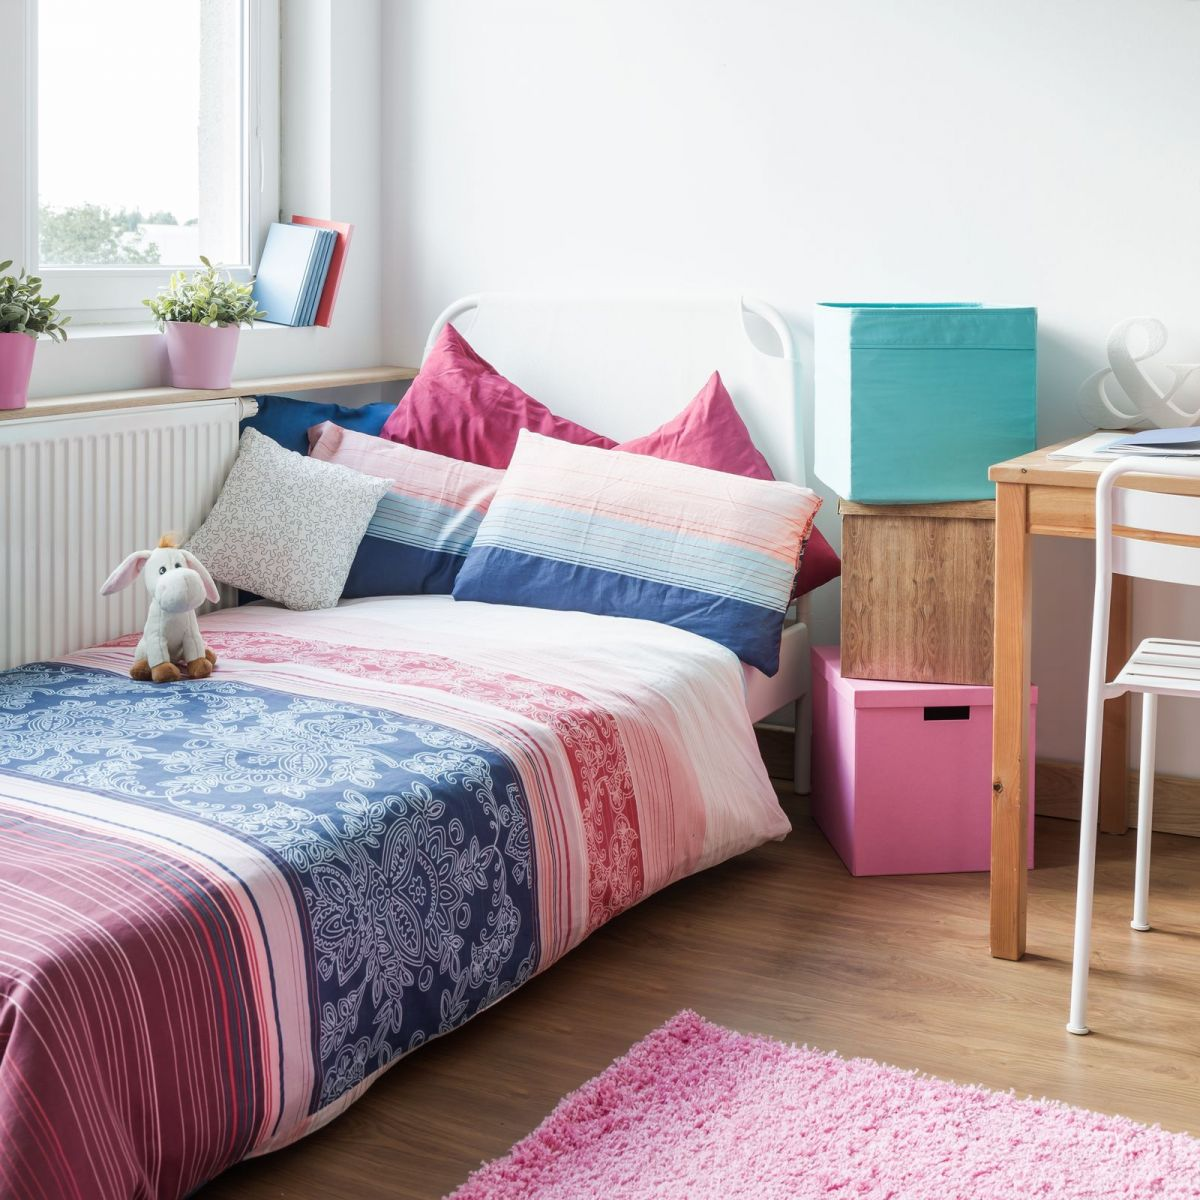 Lots of Pretty Colors and Striped Bedroom Decor